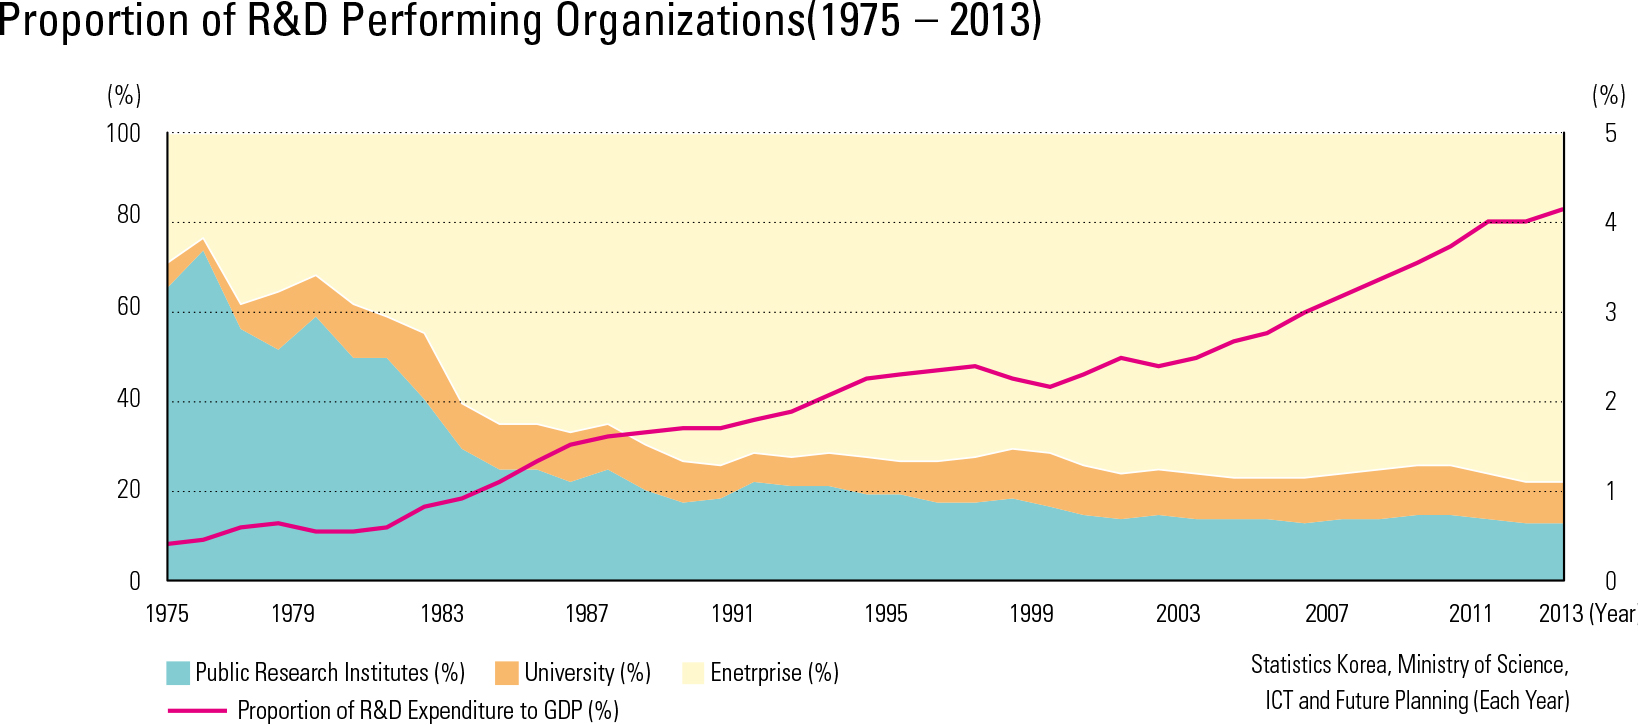 "Proportion of R&D Performing Organizations(1975 – 2013)<p class=""oz_zoom"" zimg=""http://imagedata.cafe24.com/us_3/us3_152-4_2.jpg""><span style=""font-family:Nanum Myeongjo;""><span style=""font-size:18px;""><span class=""label label-danger"">UPDATE DATA</span></span></p>"